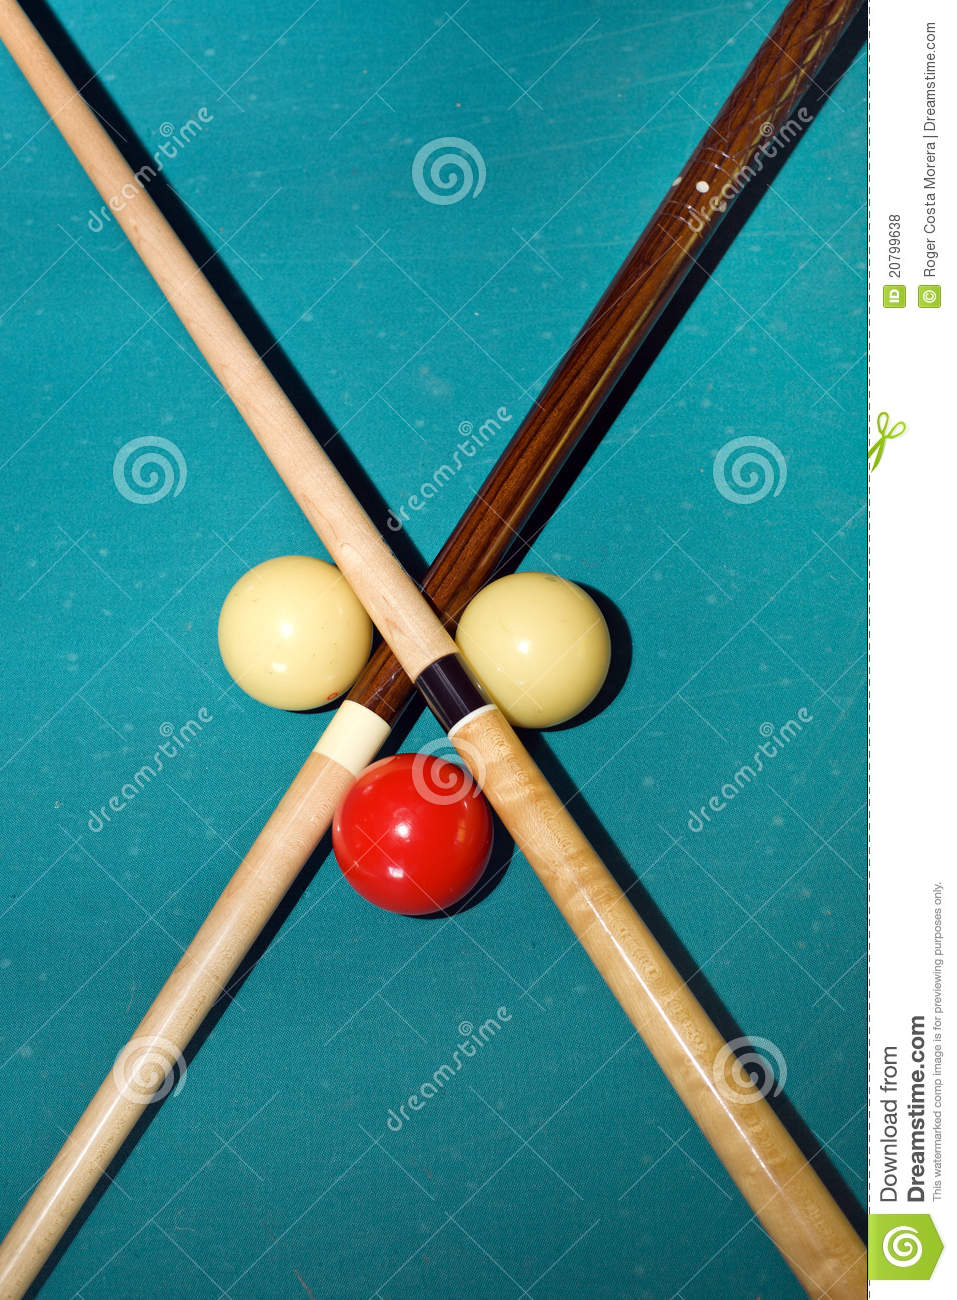 Cross With Pool Sticks Royalty Free Stock Photos Image 20799638